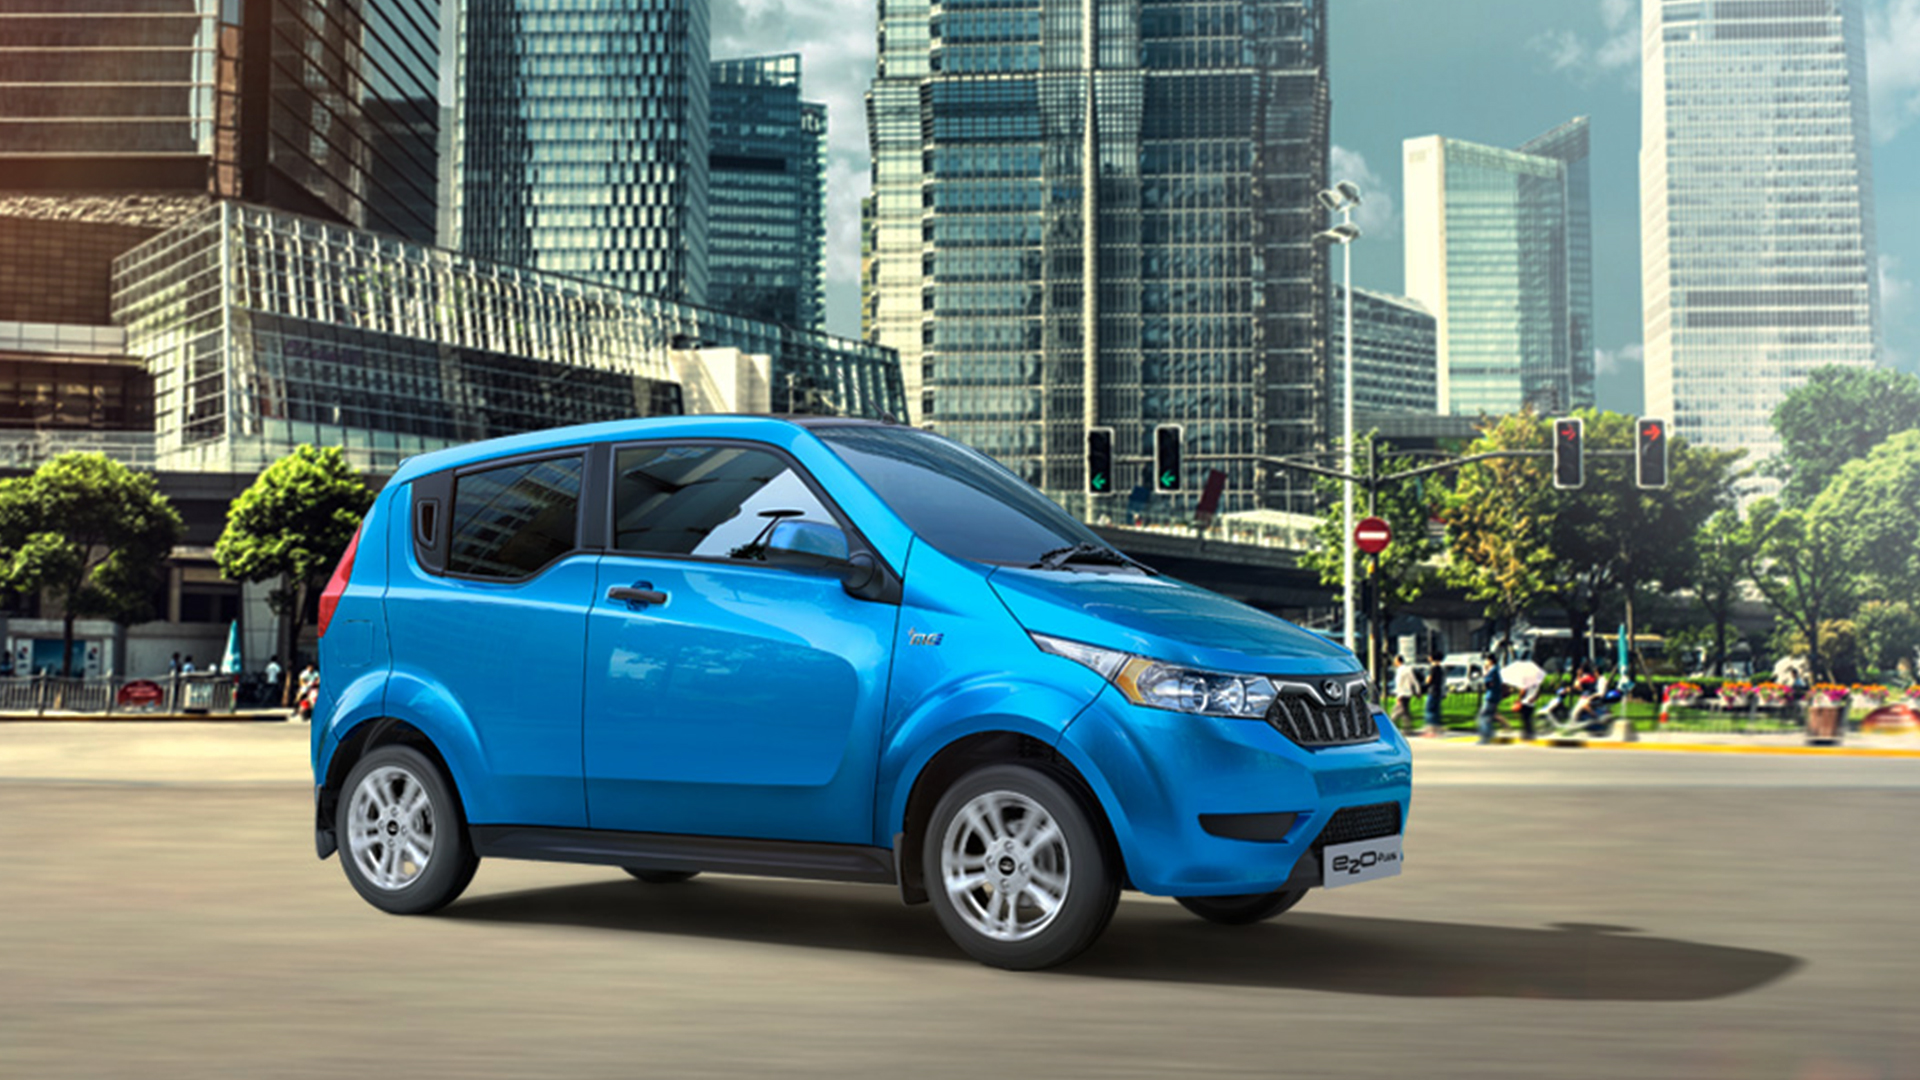 Mahindra e2oPlus Review: Getting Smart with Mahindras Electric Car